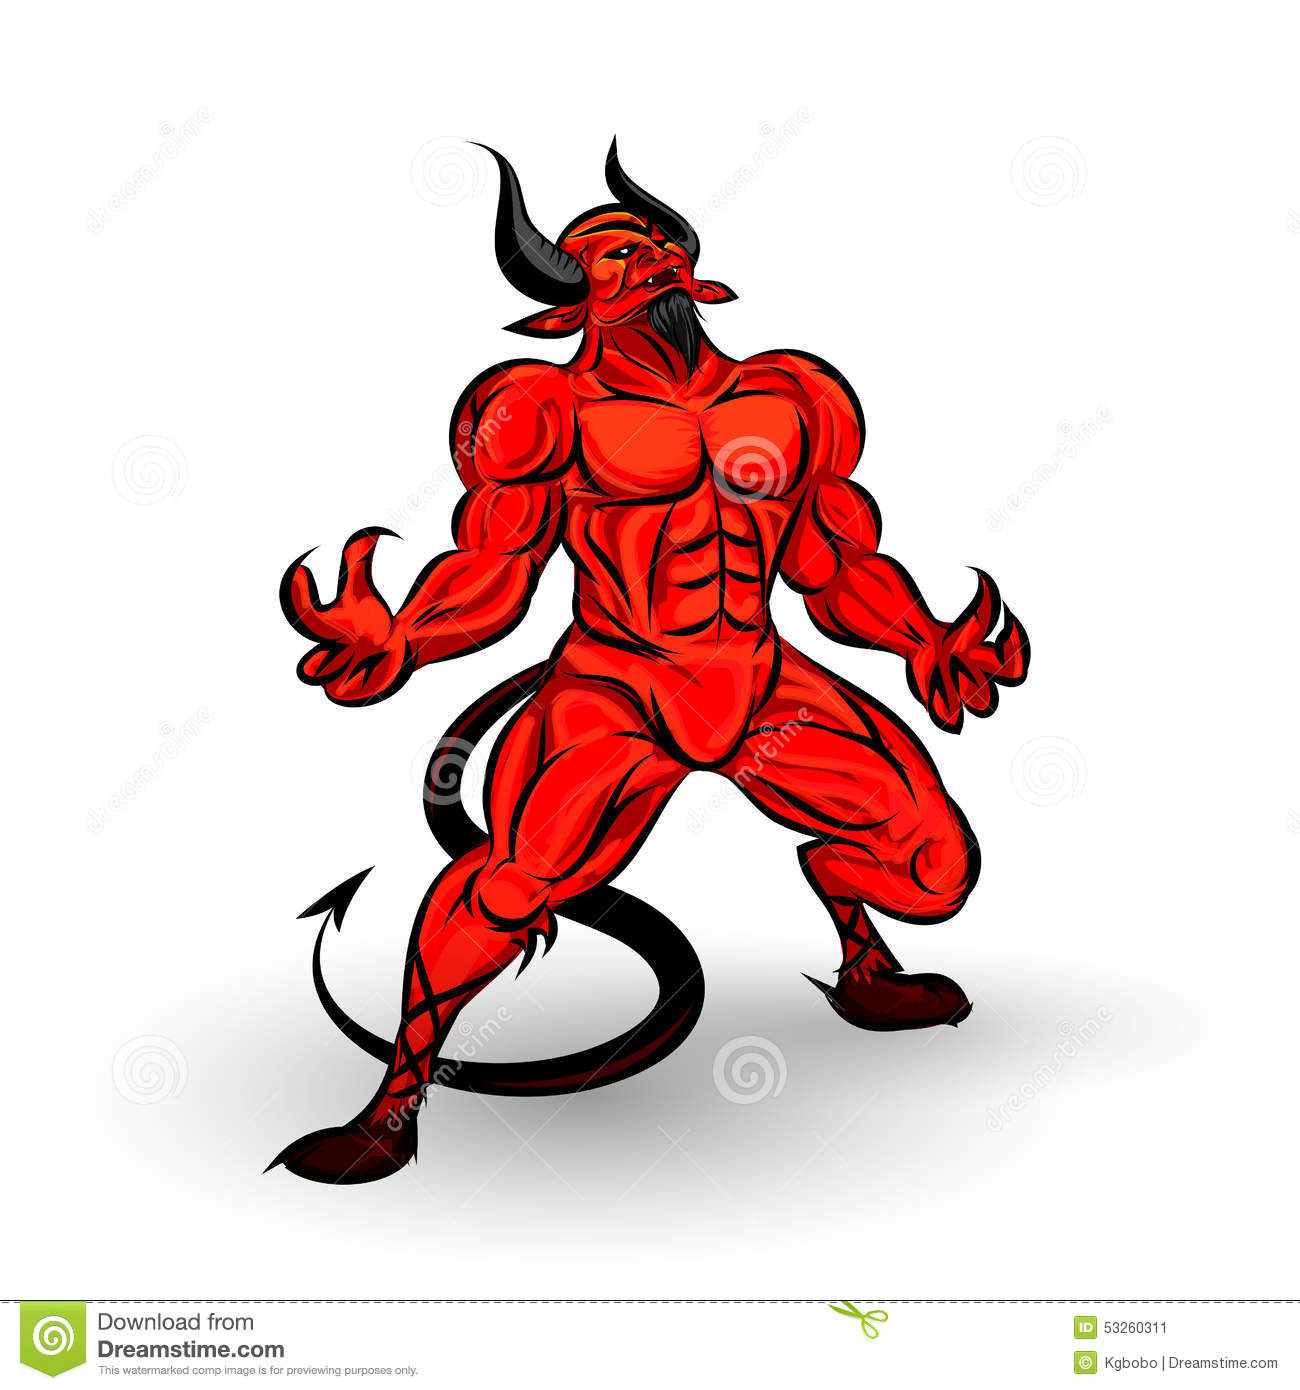 red devil character stock vector image 53260311 devil clipart images devil clipart black and white